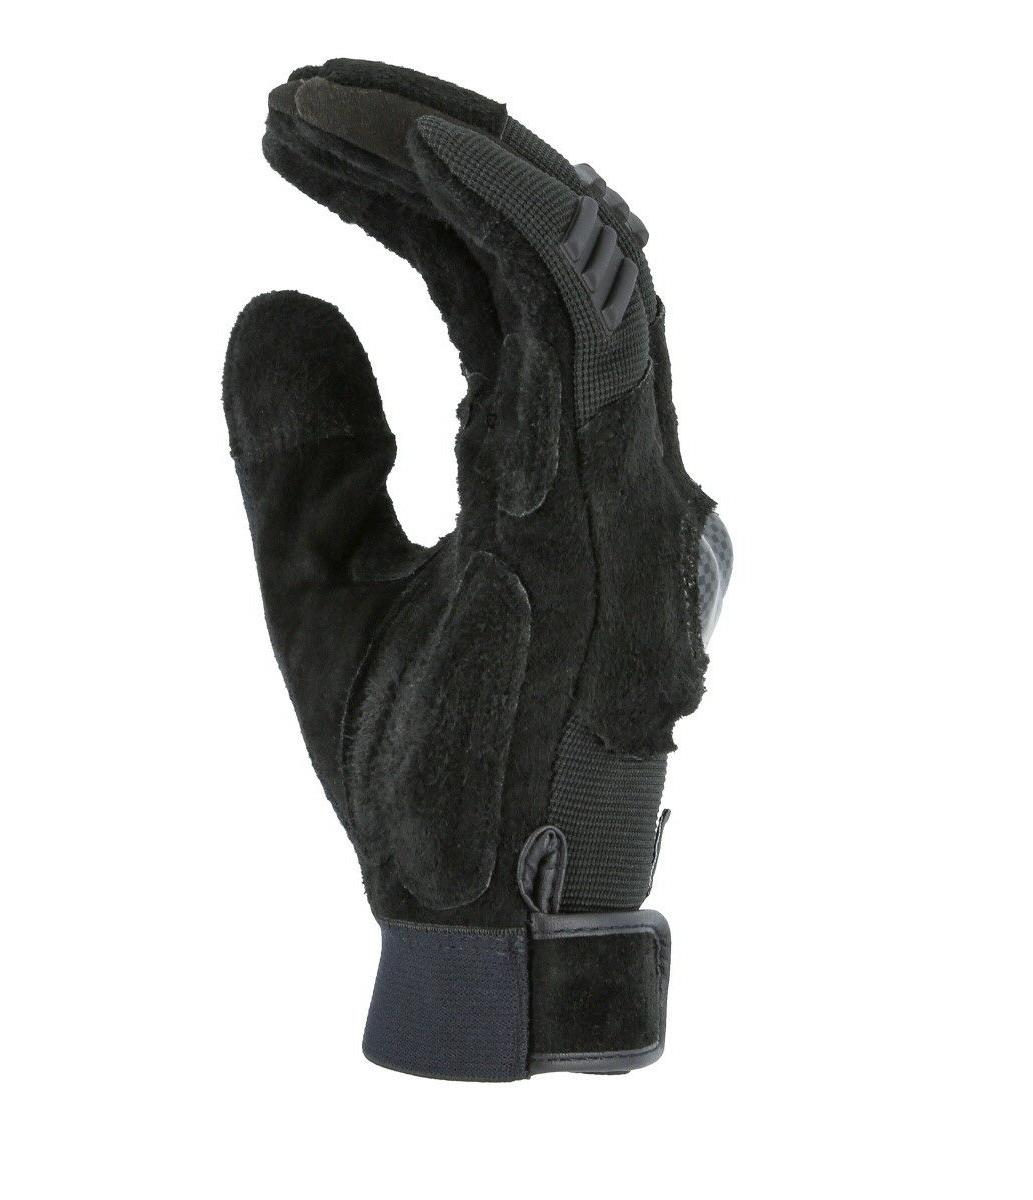 EXO-Tech TPU Knuckle-Neoprene-Cowhide Leather Gloves Powersports-Motorcycle-ATV